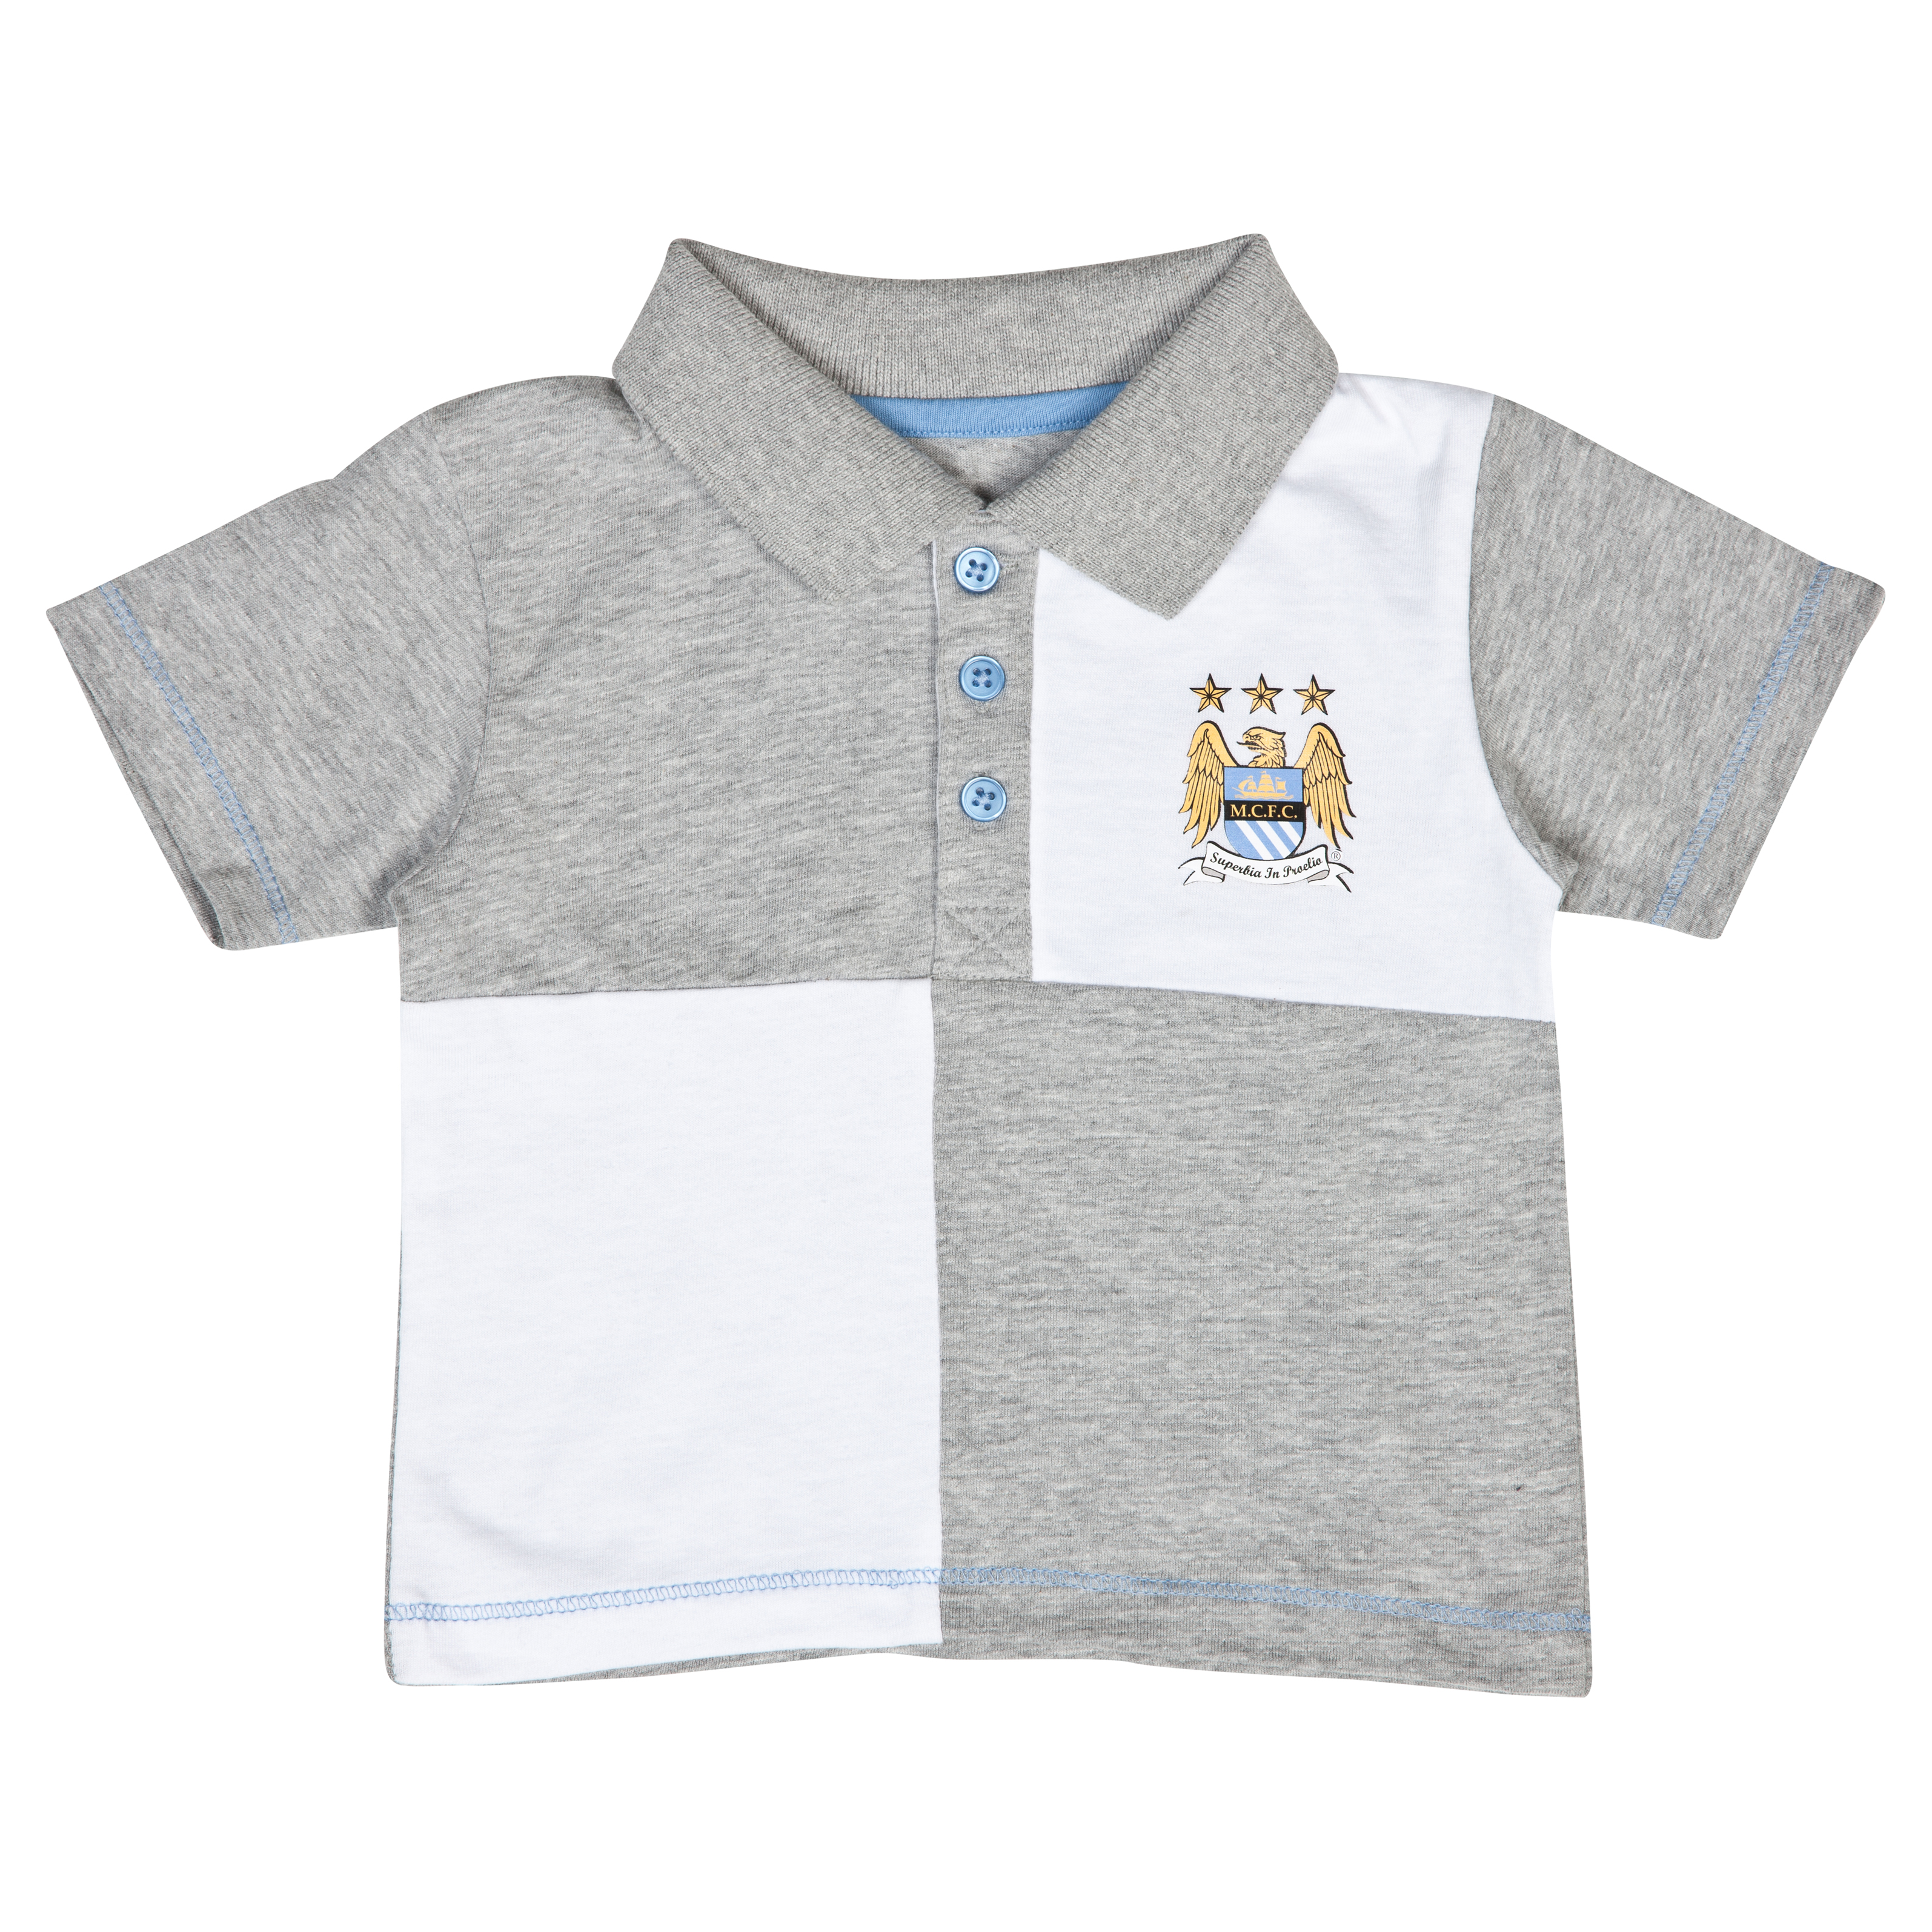 Manchester City Quarter Polo Top - Grey/White